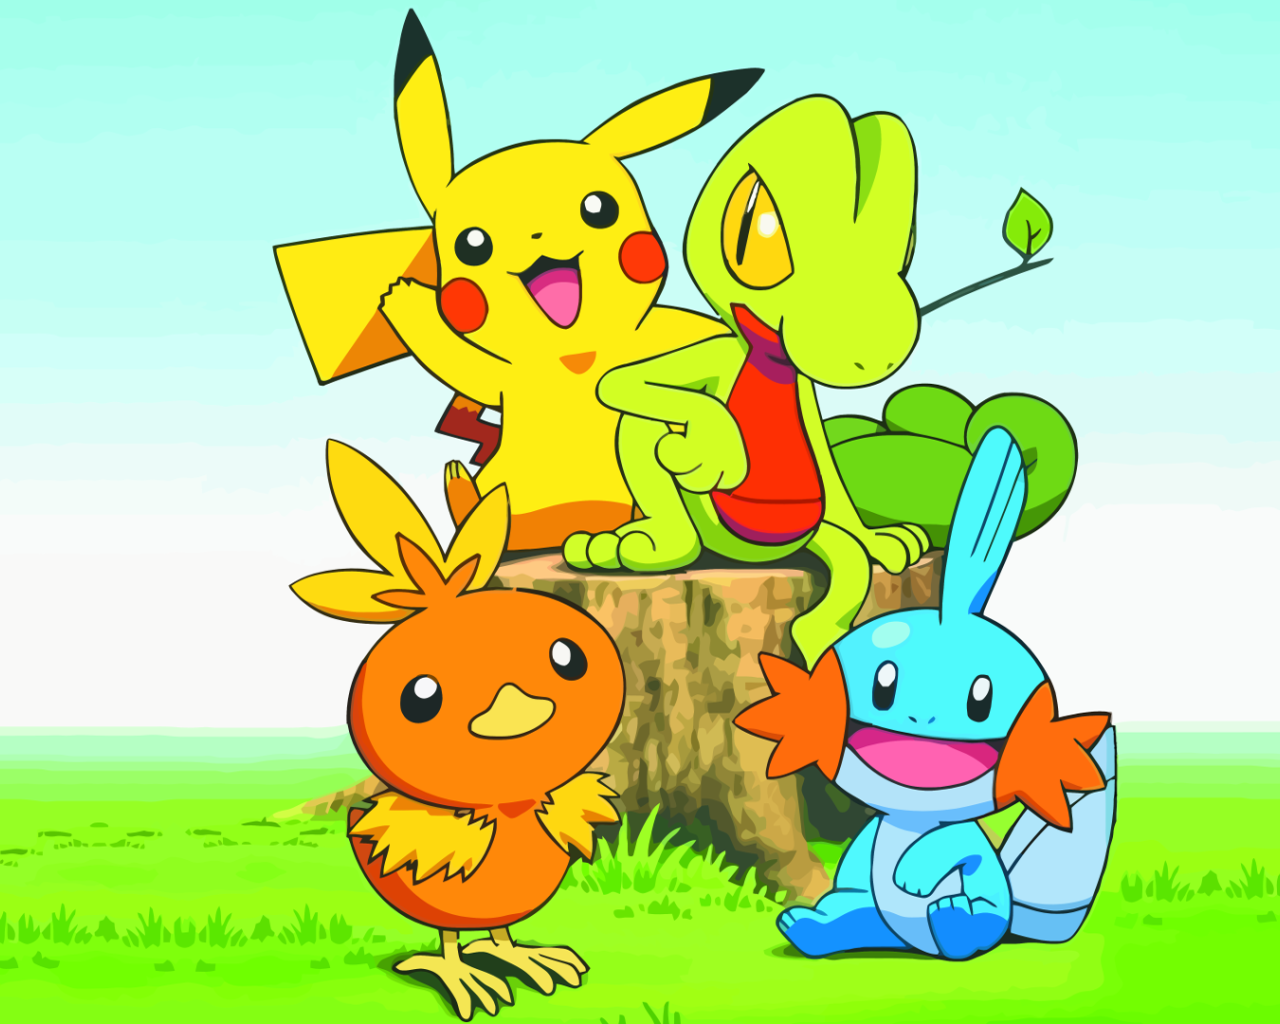 Pokemon Pikachu Wallpapers 1280x1024